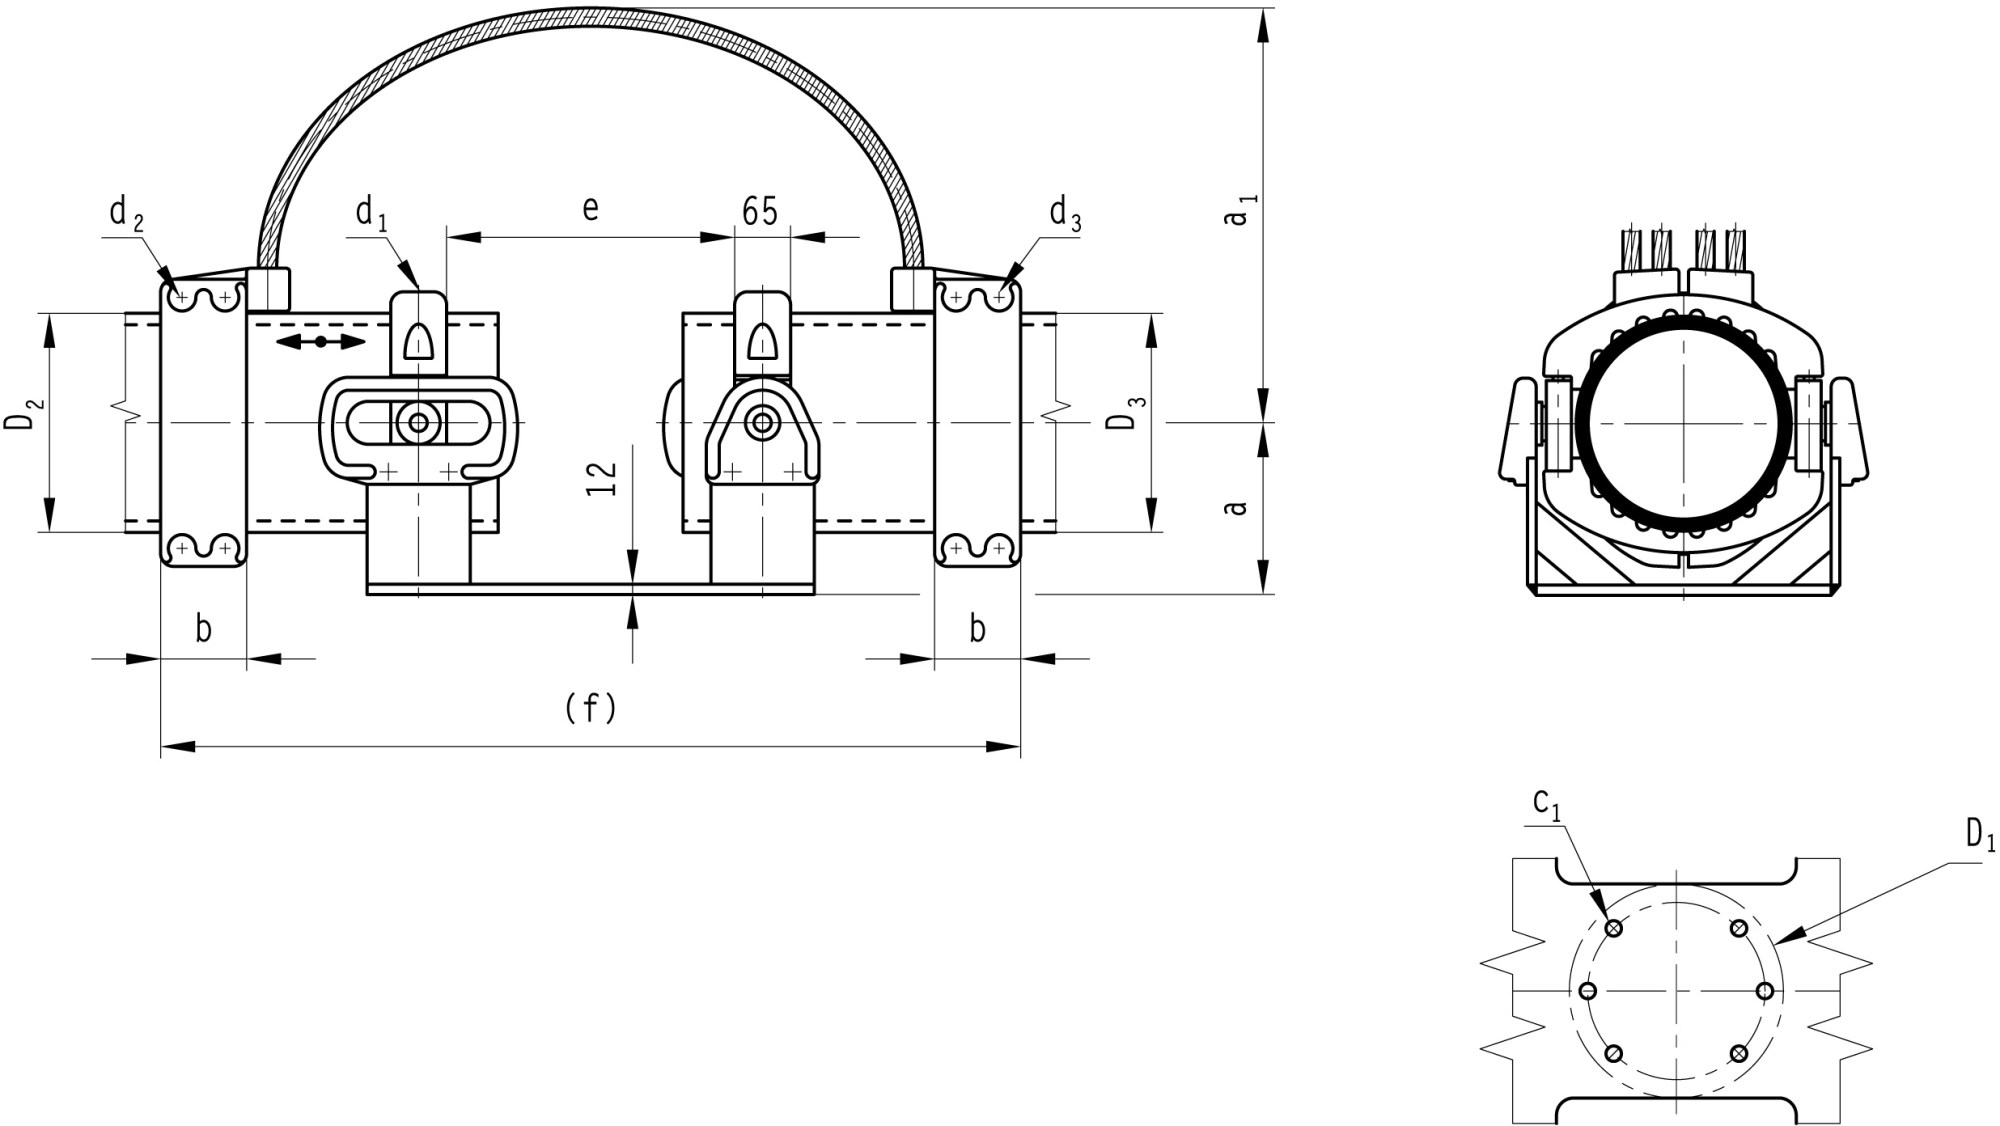 hight resolution of b 6 1 al clamps support sliding fixed for al tube and base plate